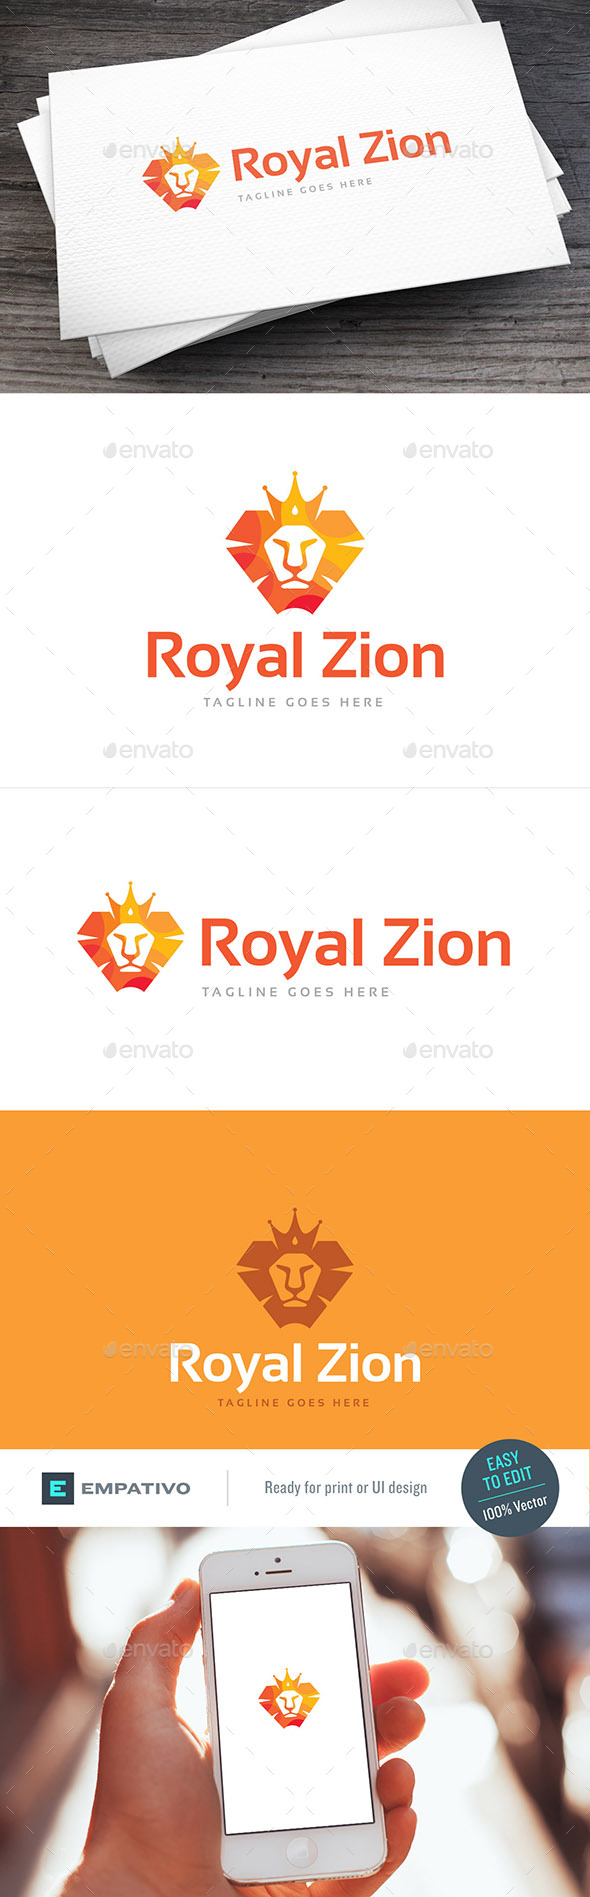 Royal Zion Logo Template